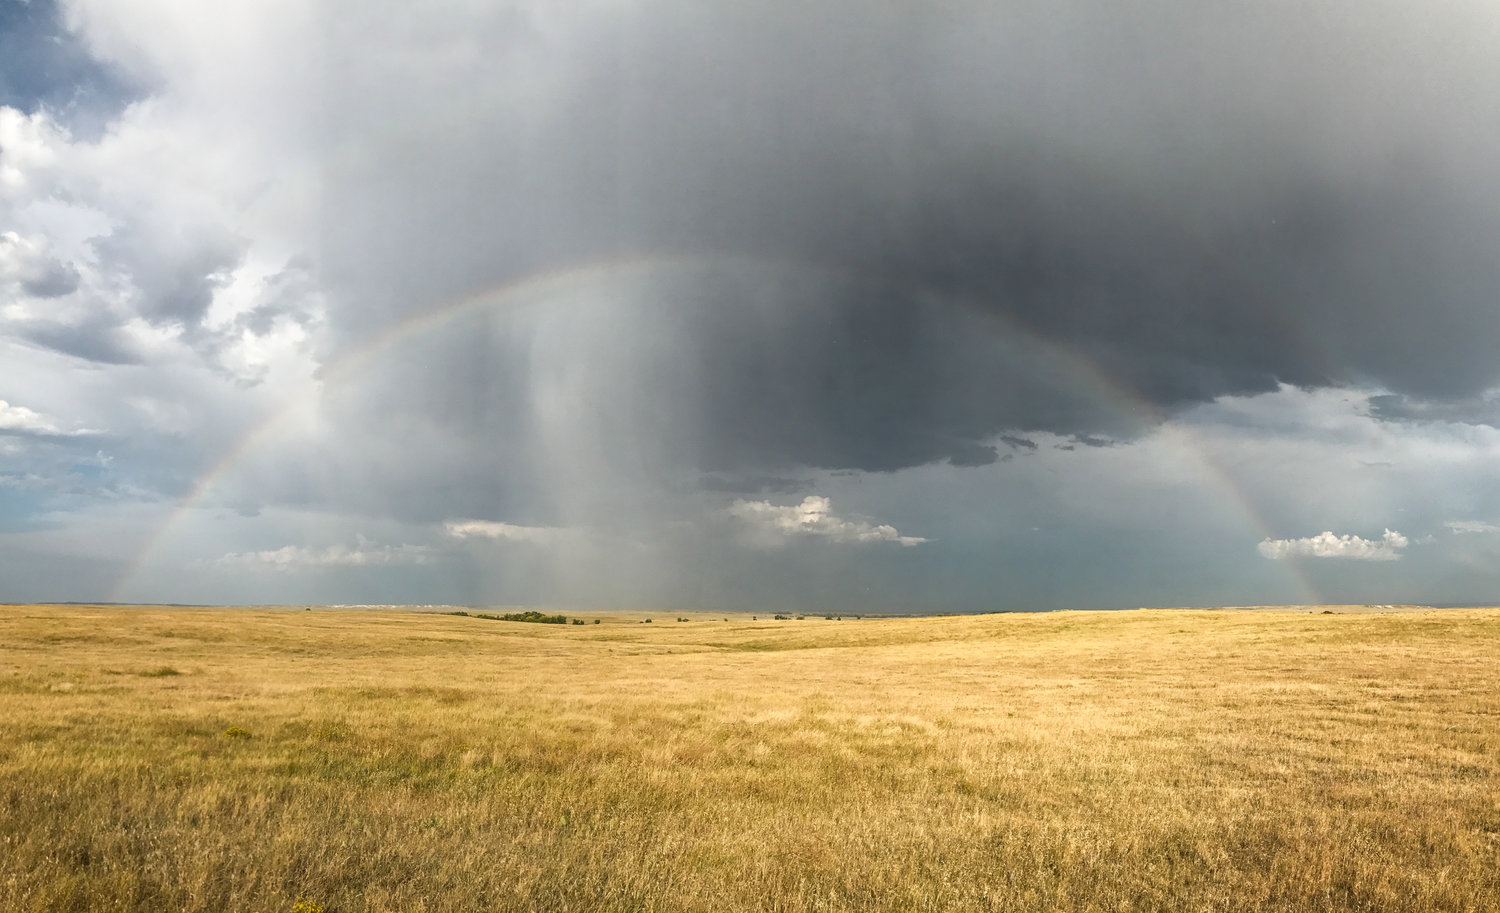 A double rainbow formed after the thunderstorm passed. This iPhone panoramic photo unforuntately does the scene no justice.